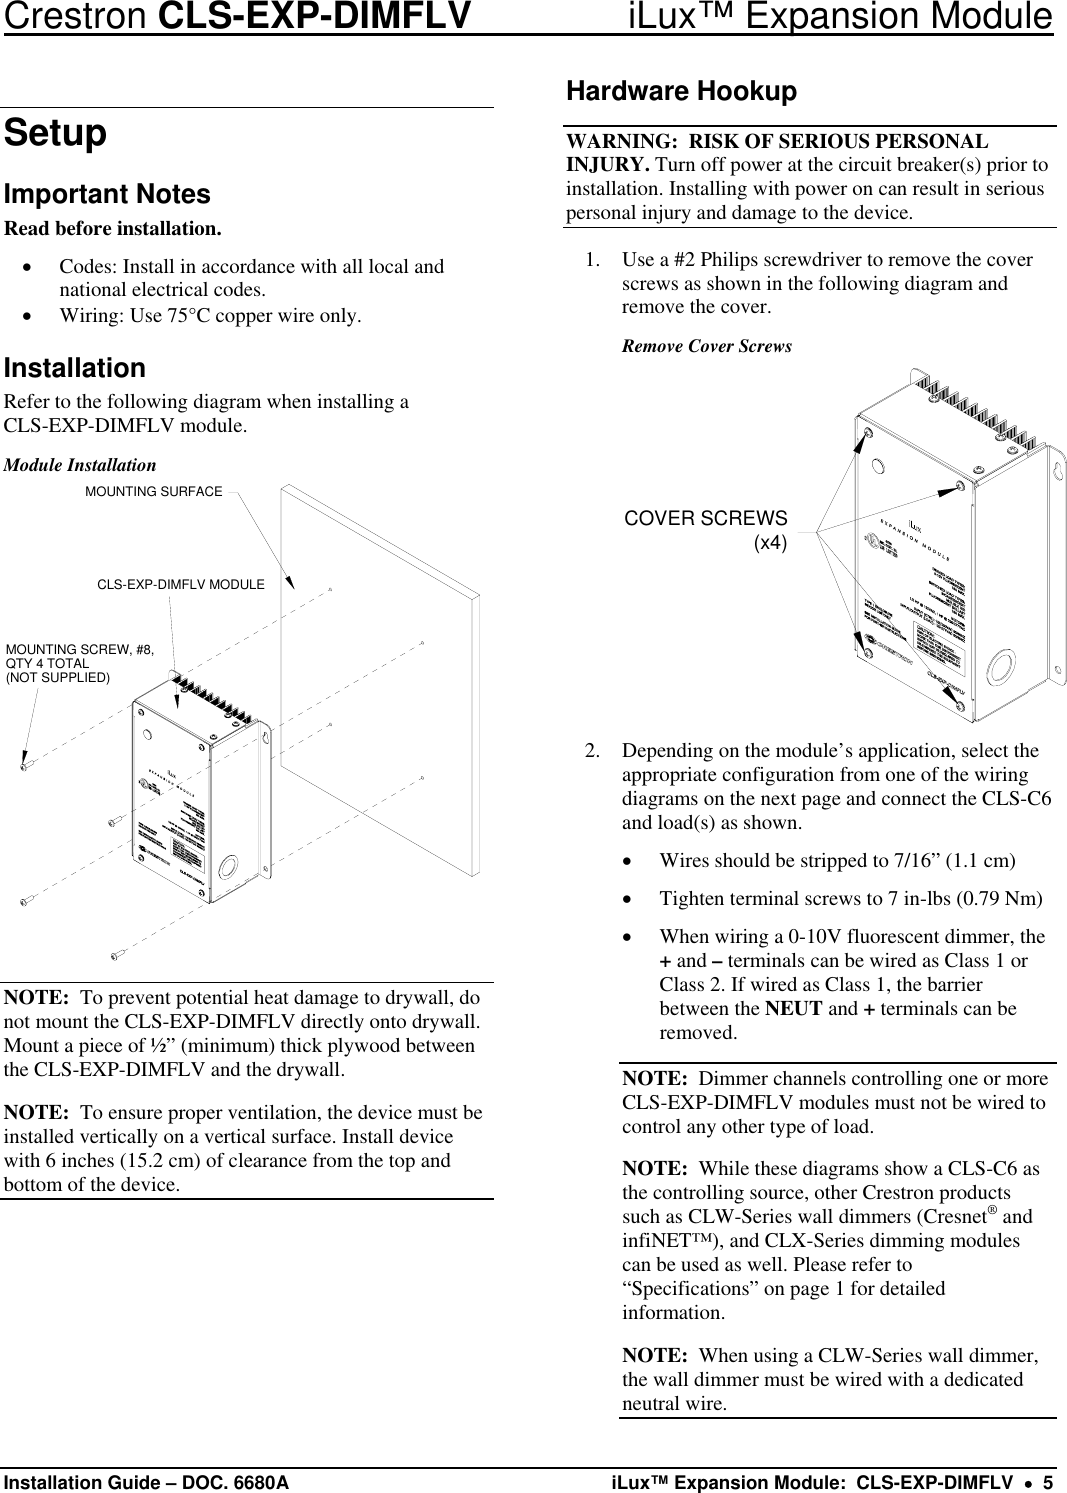 Crestron Electronic Cls Exp Dimflv Users Manual Description Wiring Diagrams Page 5 Of 8